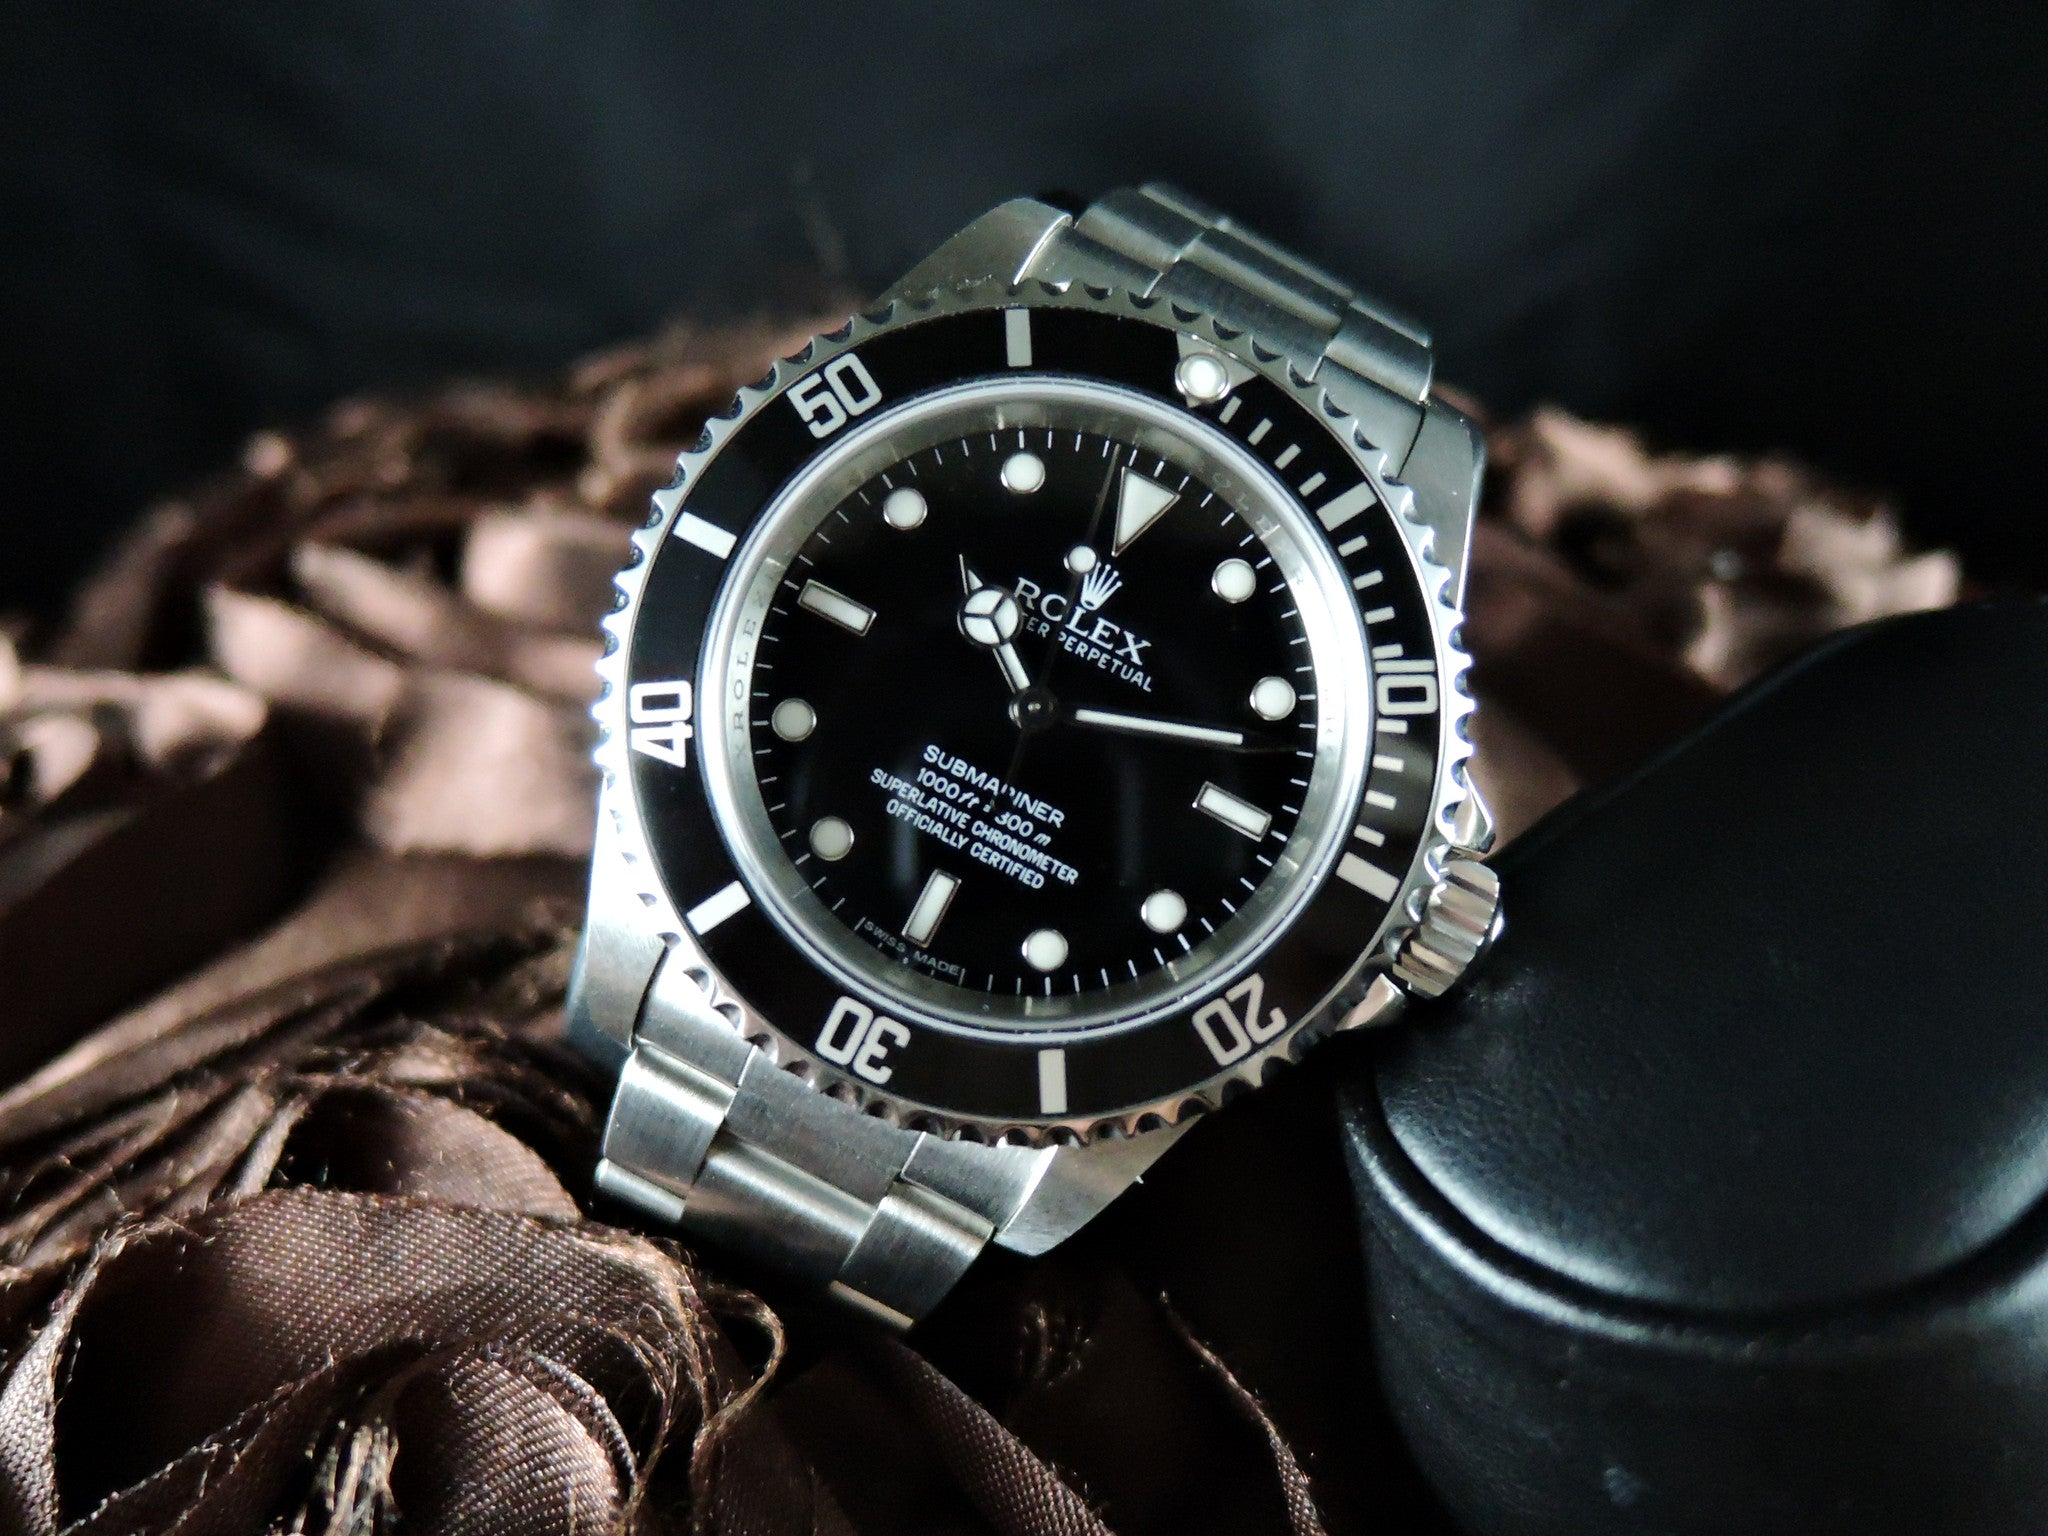 2010 Rolex Submariner 14060m No Date 4 Lines Cosc Alex Pig